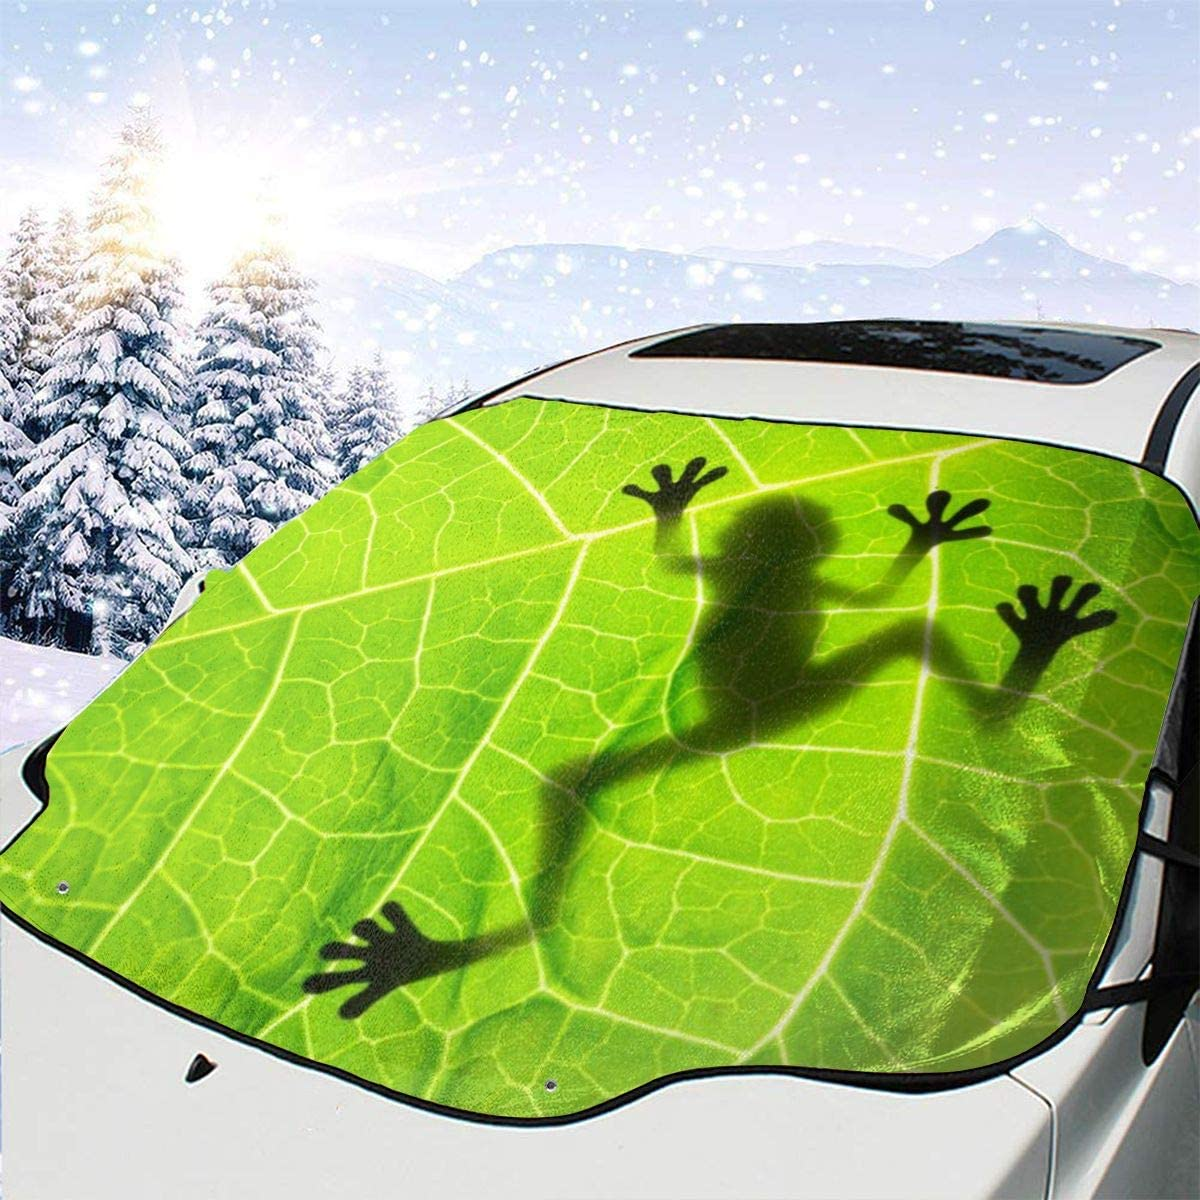 THONFIRE Car Front Window Windshield Winter Sun Shade Frogs Cover Waterproof Blocks Heat Damage Free Visor Protector Auto Autumn Heat Insulation